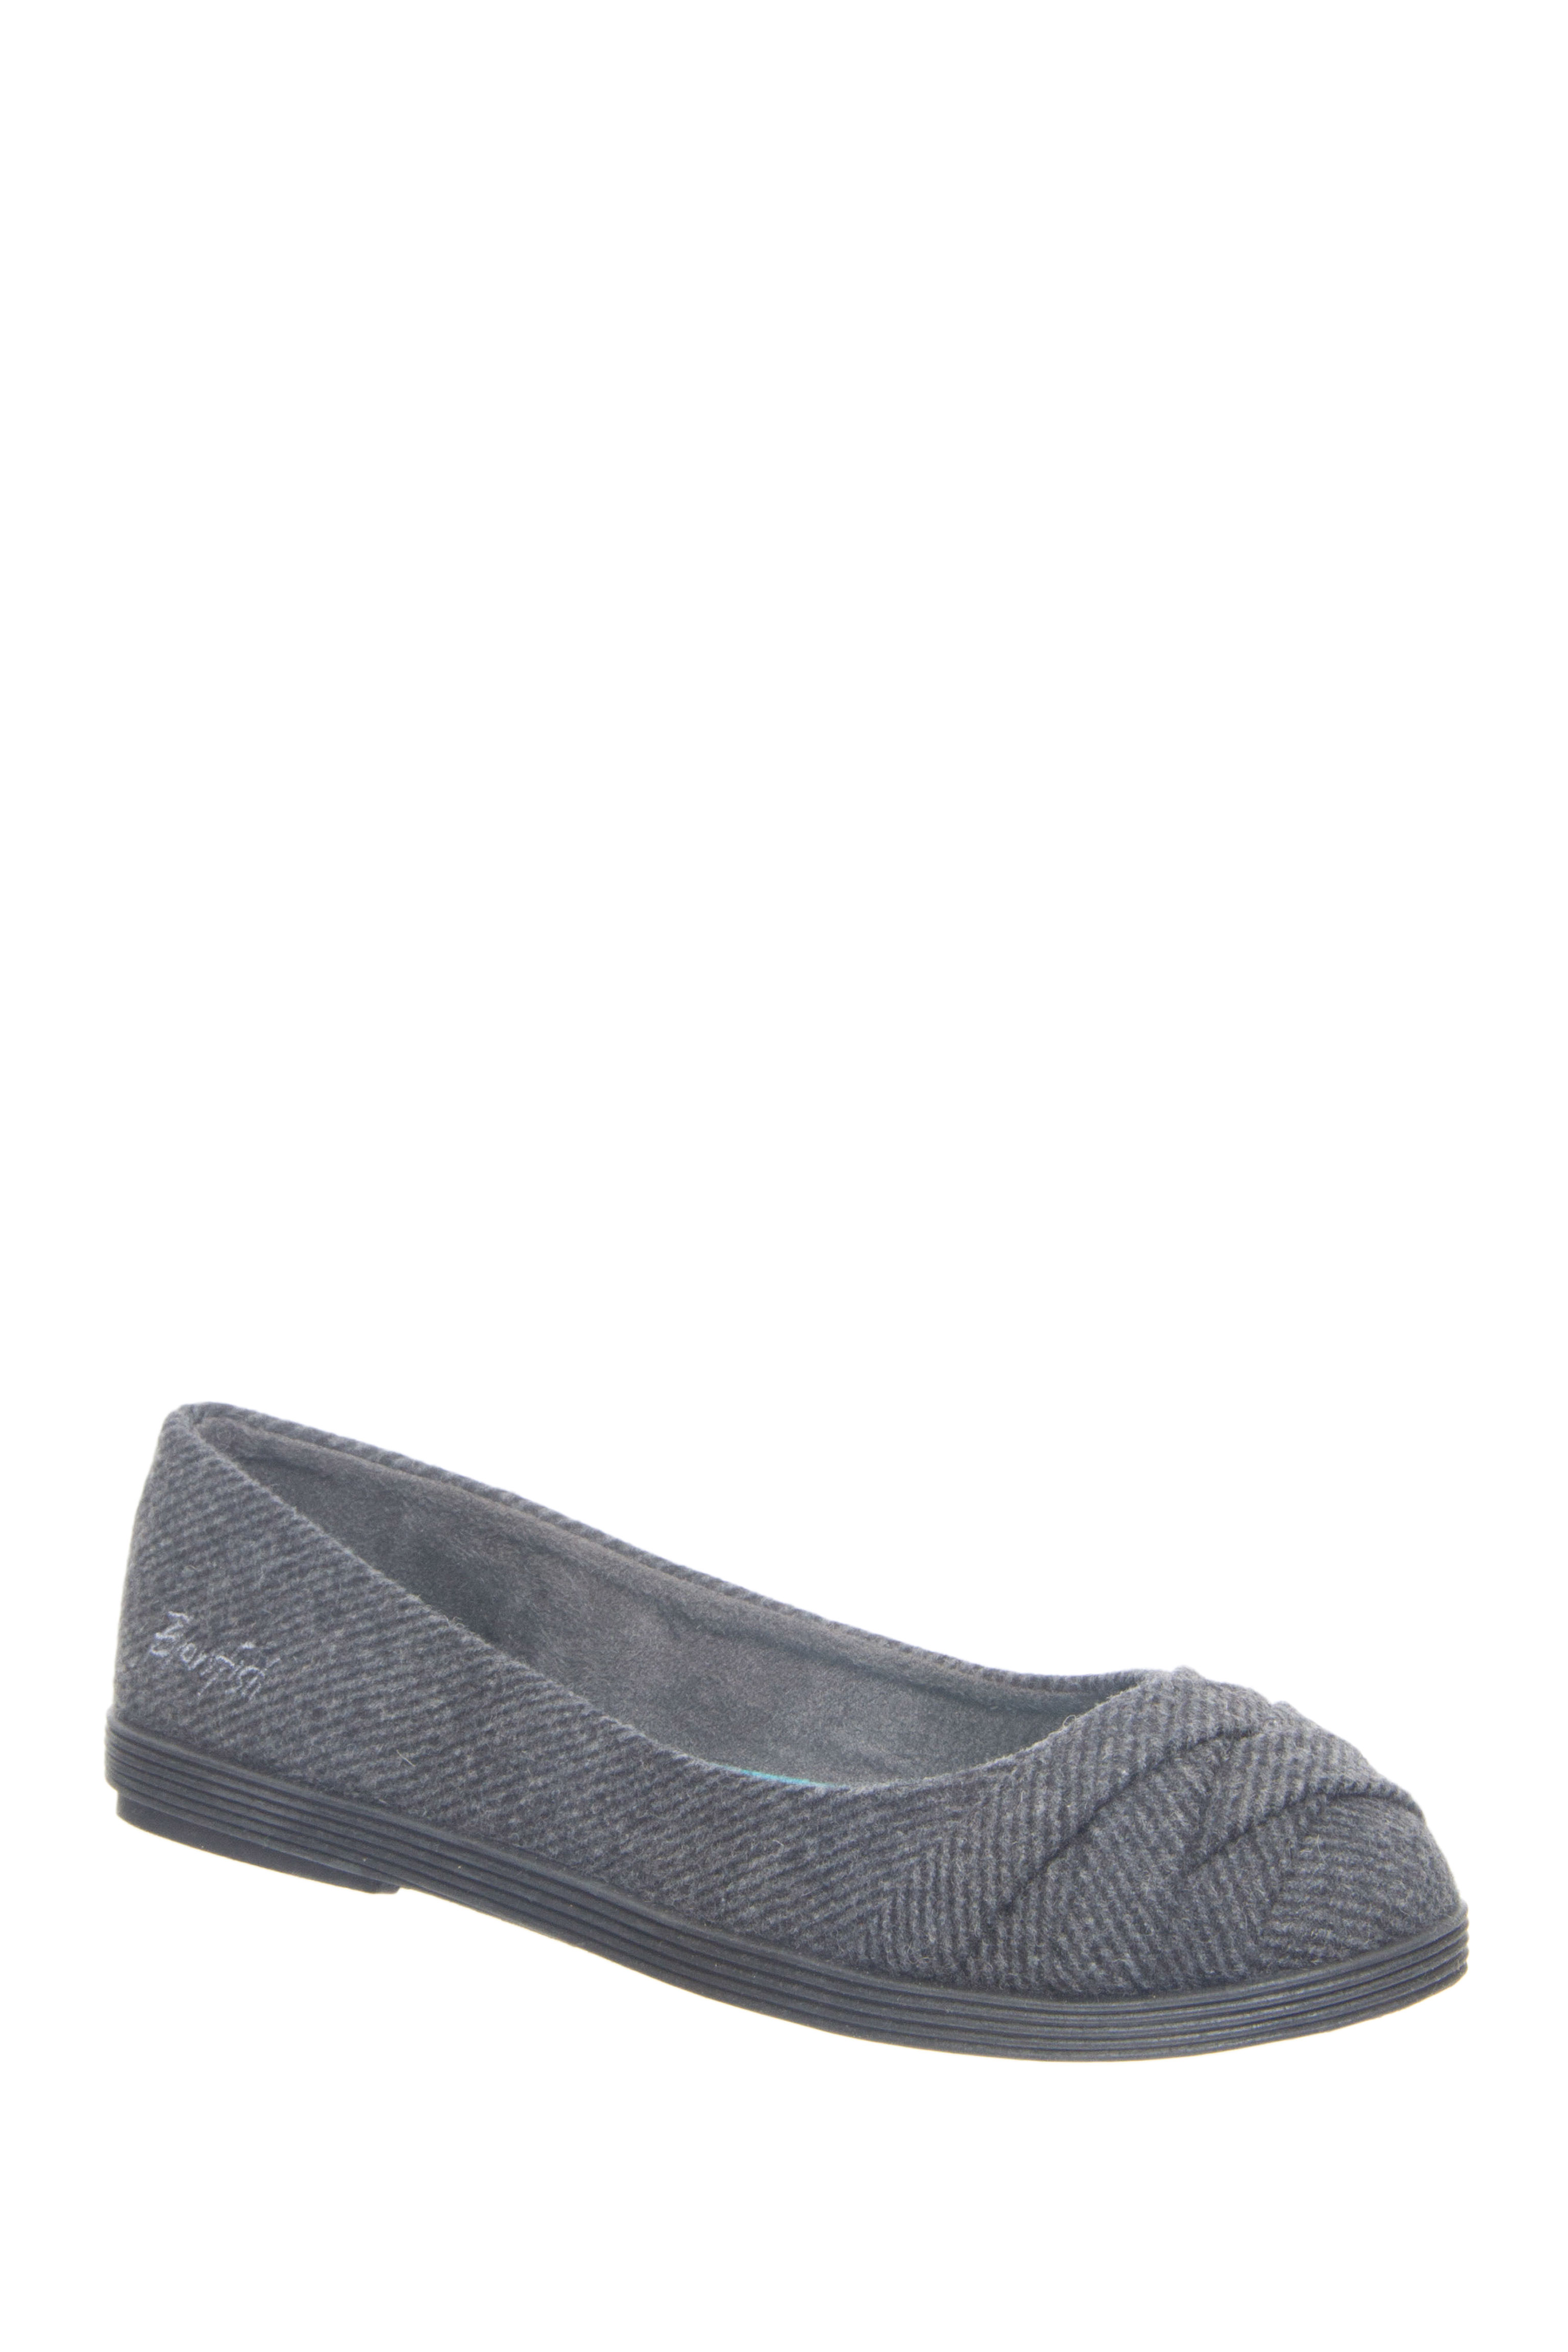 Blowfish Glo 2 Round Toe Flats - Grey